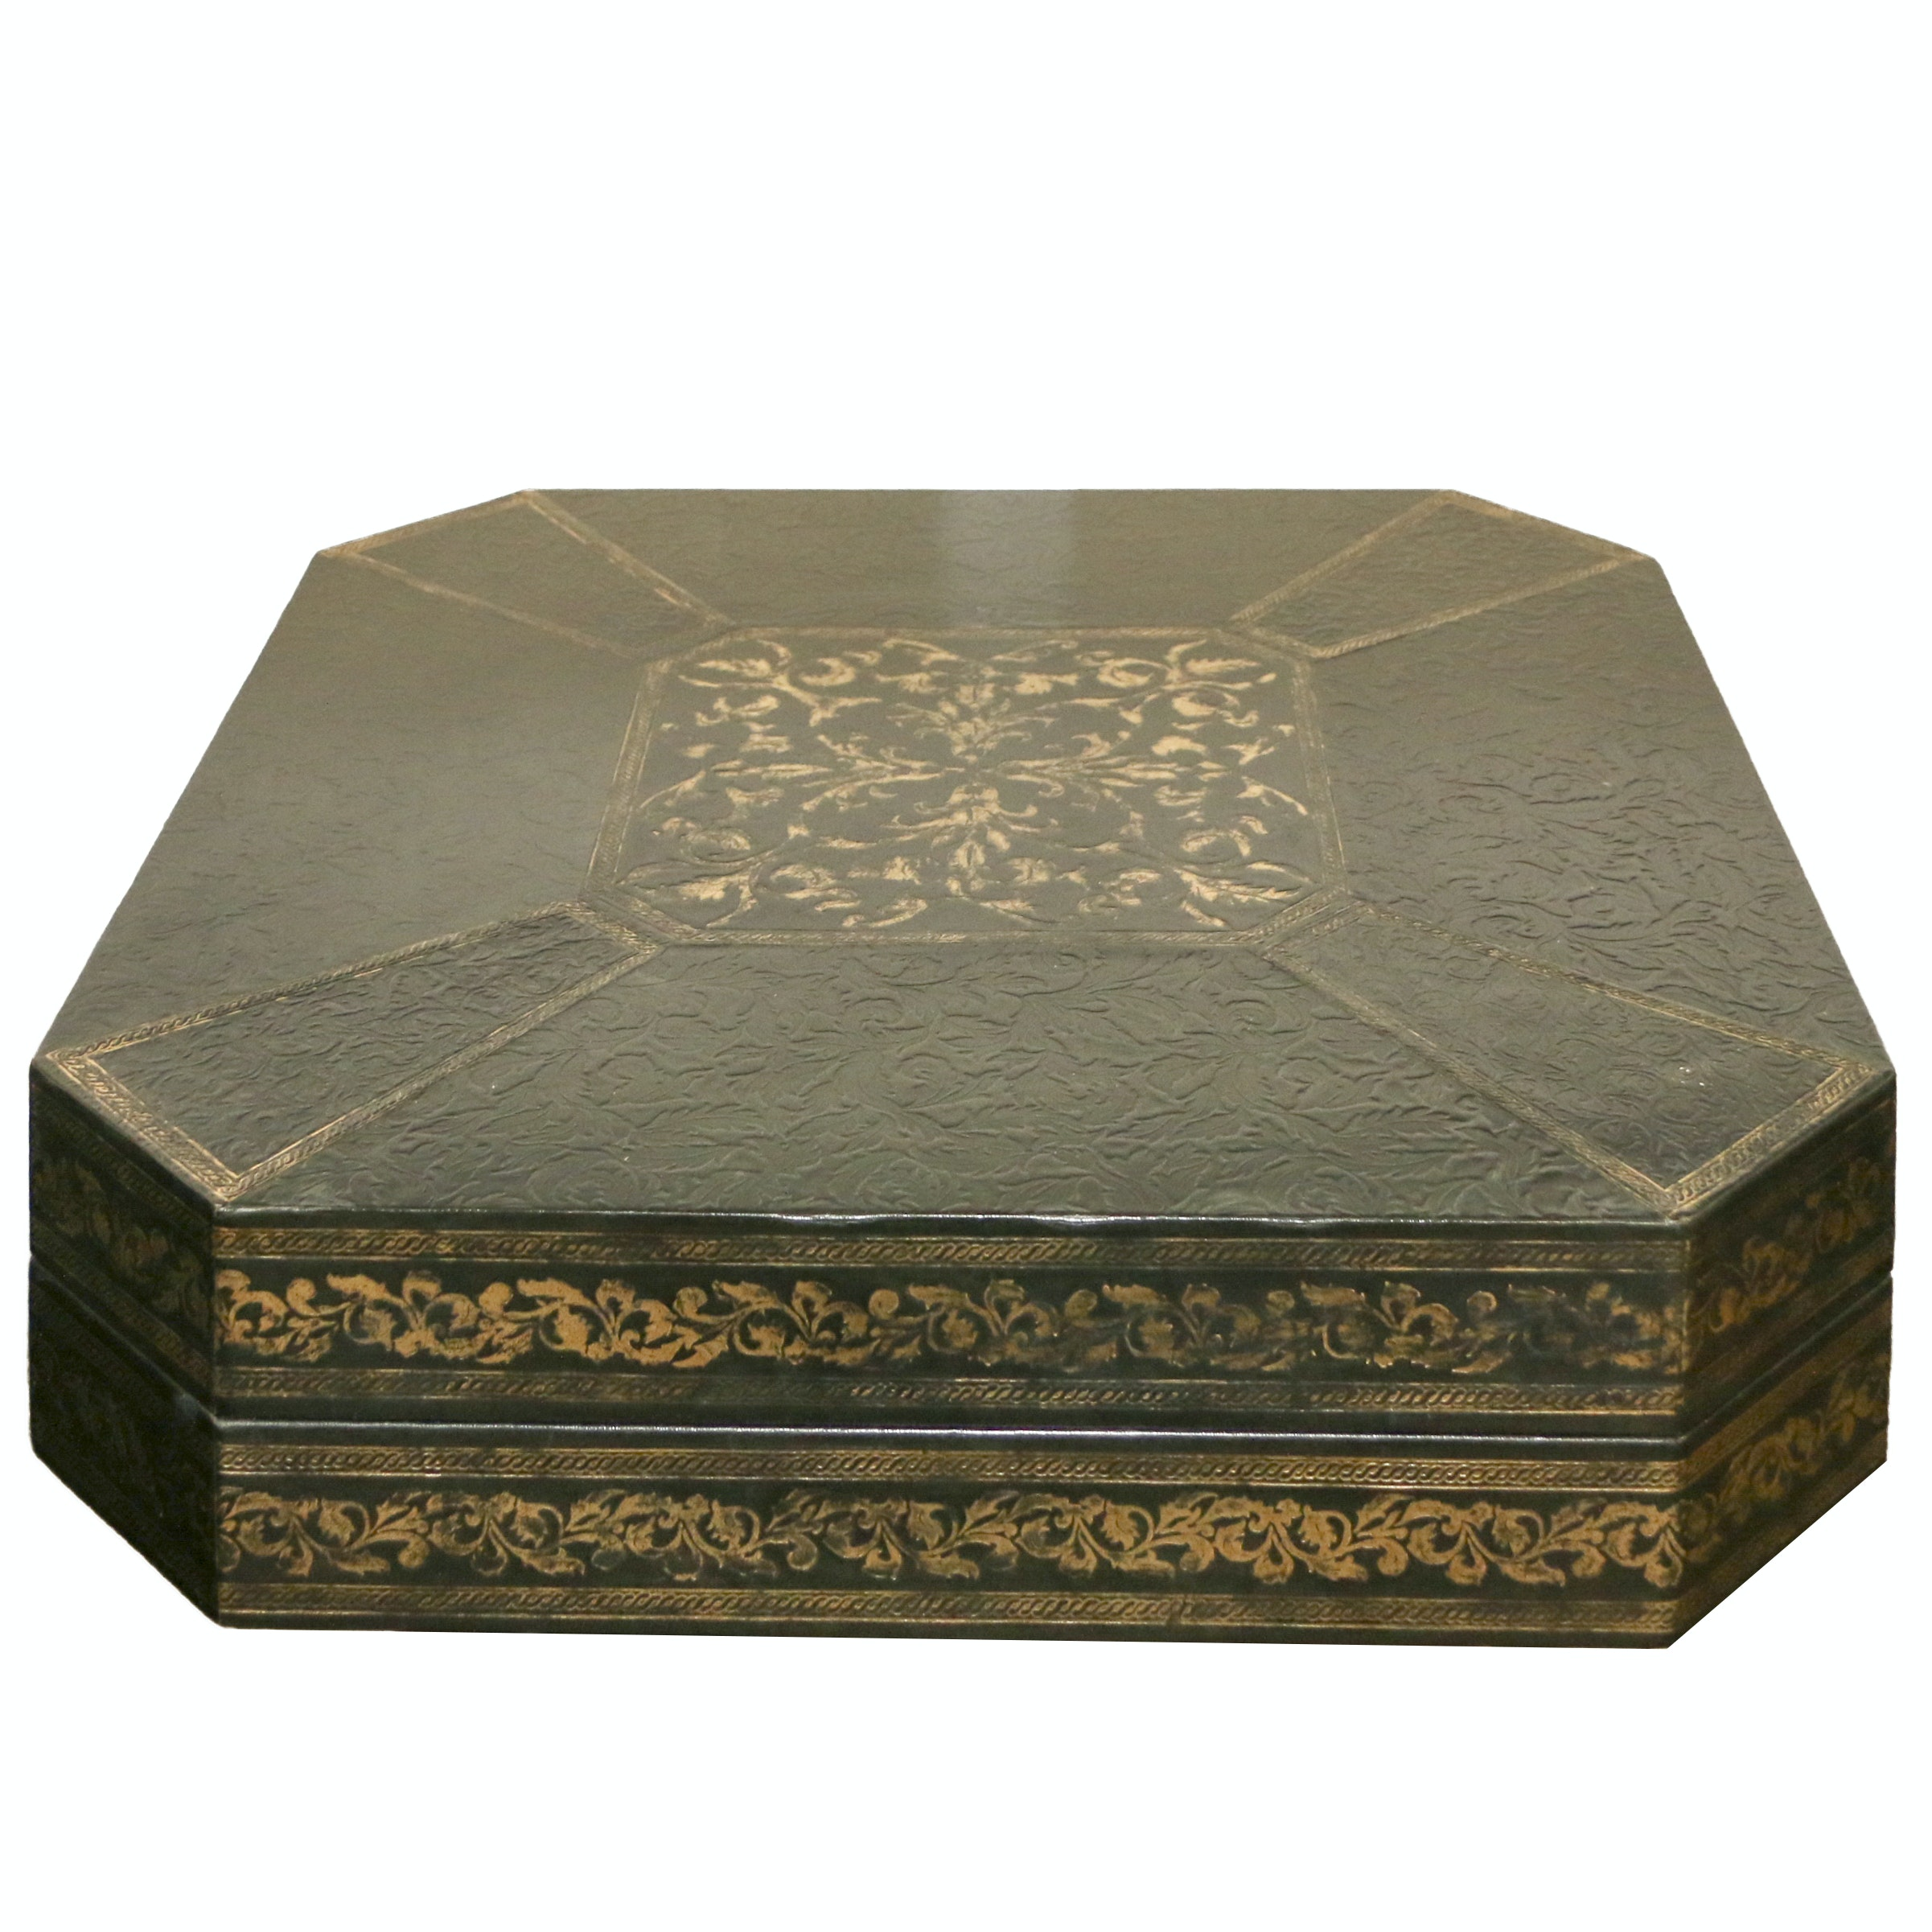 Embossed Leather and Wood Box